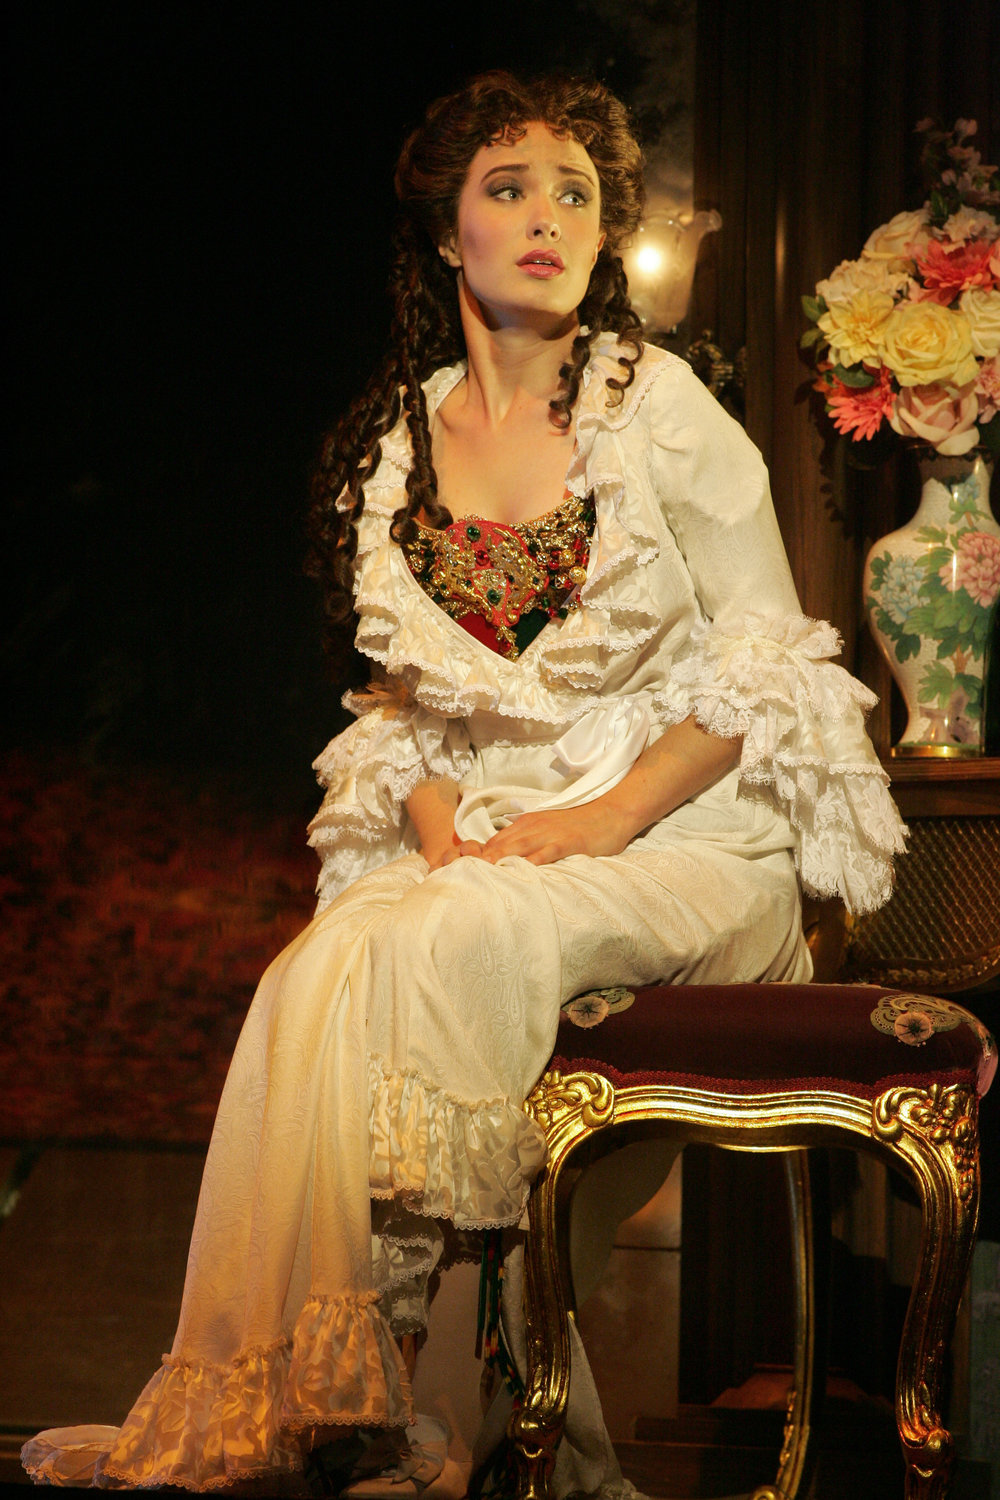 Sierra-Boggess-Dressing room - SB 3.jpg